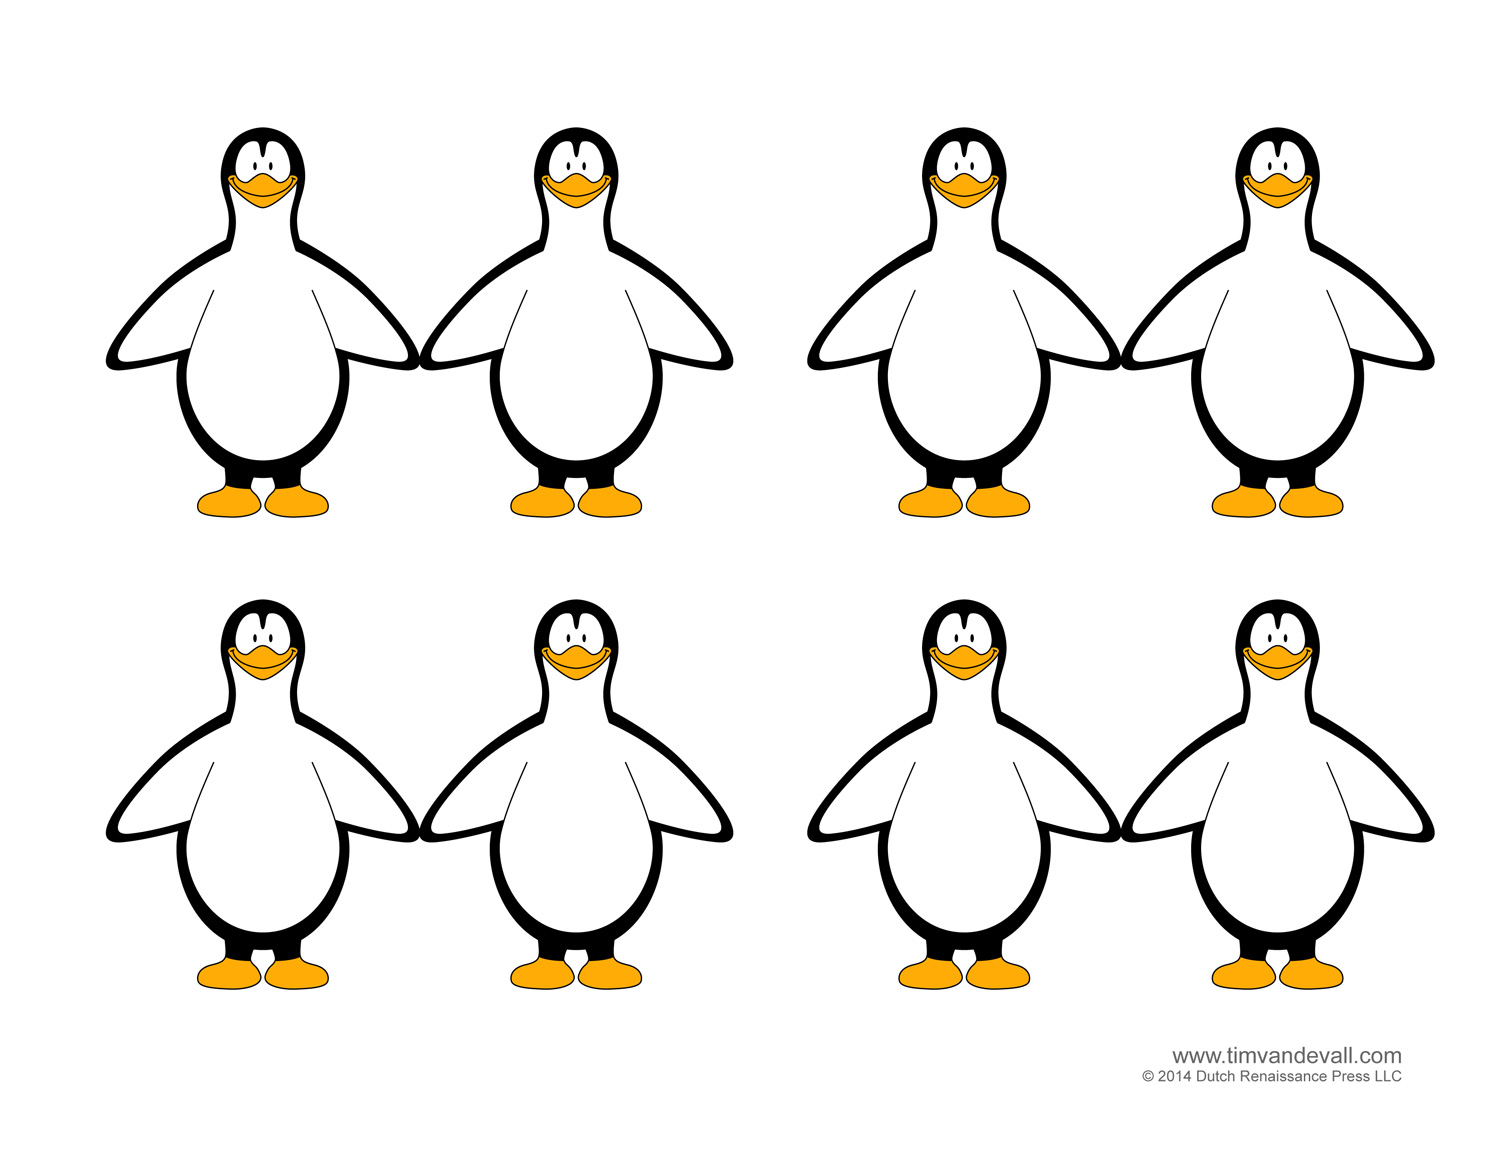 Penguin Template, Coloring Pages, Clipart Pictures and Crafts